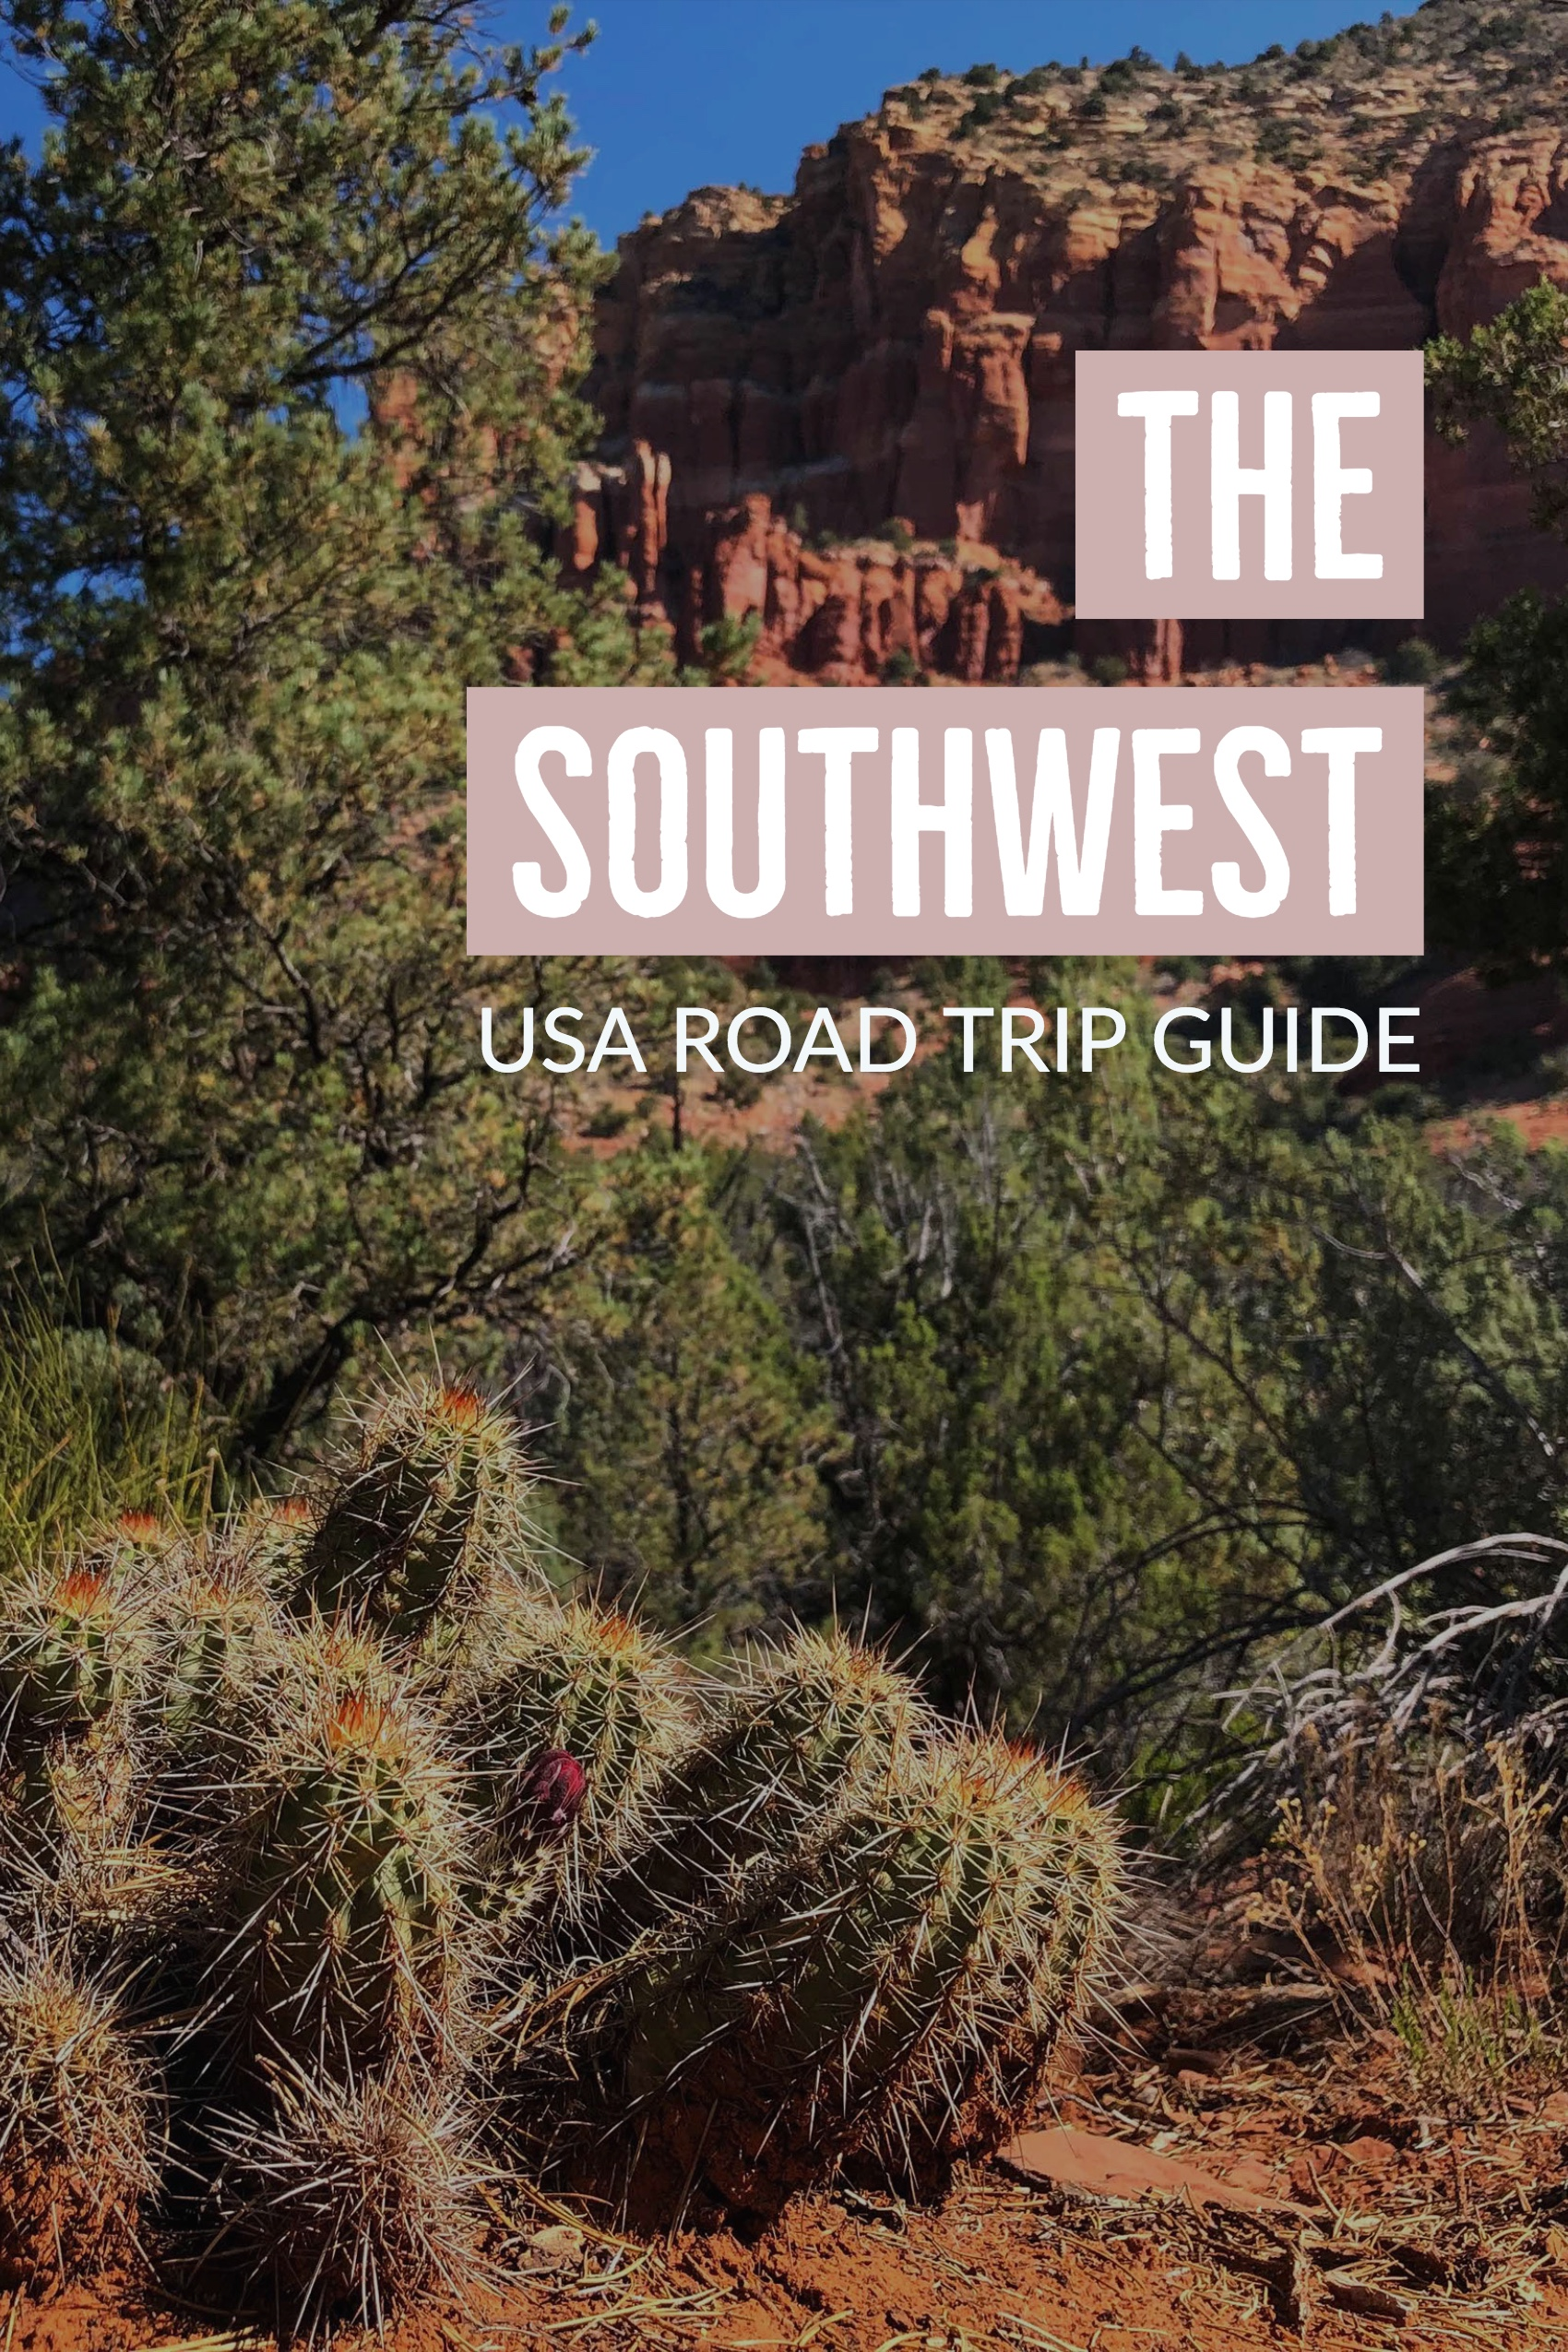 The Southwest - USA Road Trip Guide